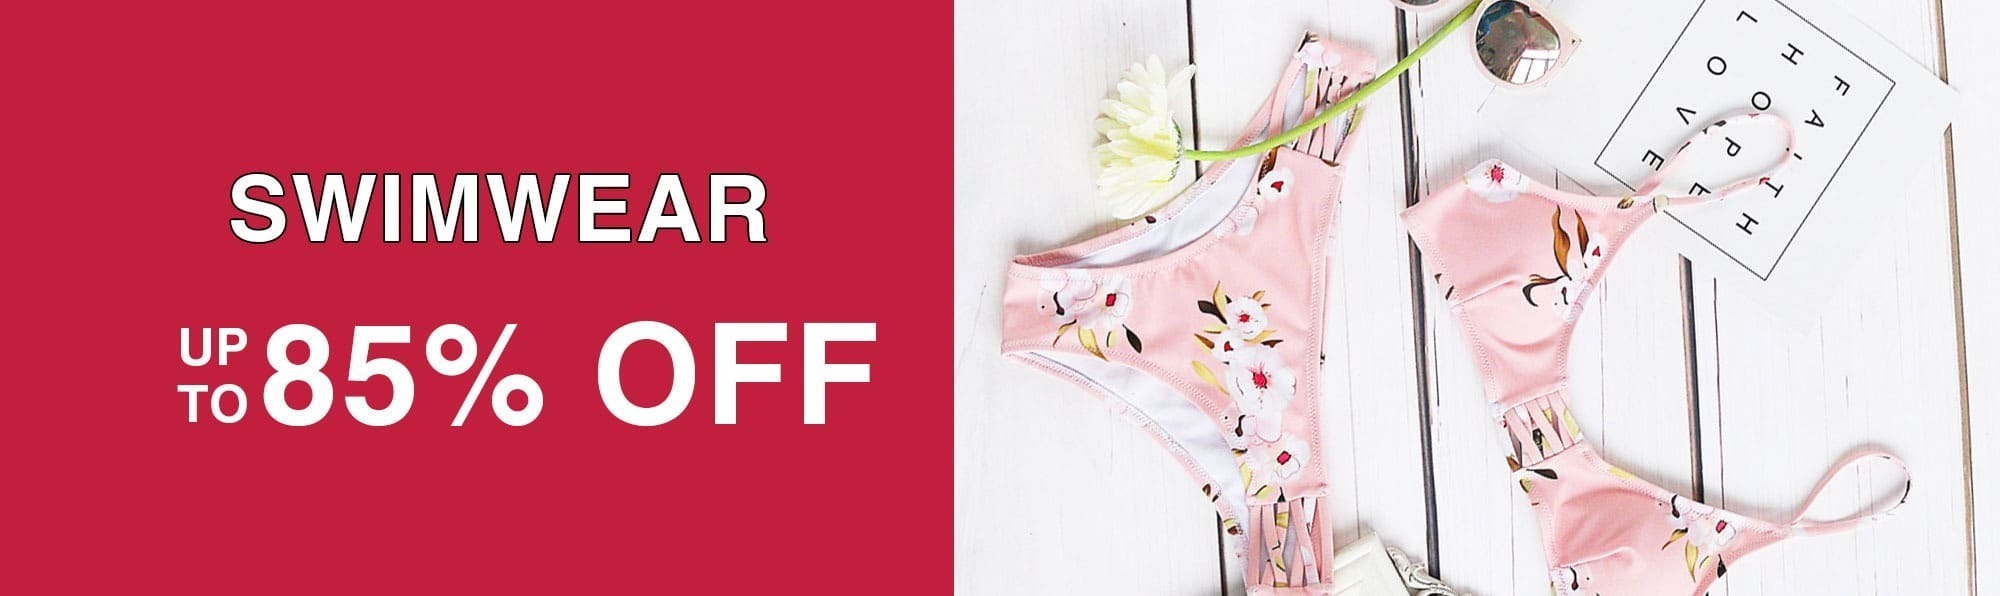 Swimwears Up To 85% off